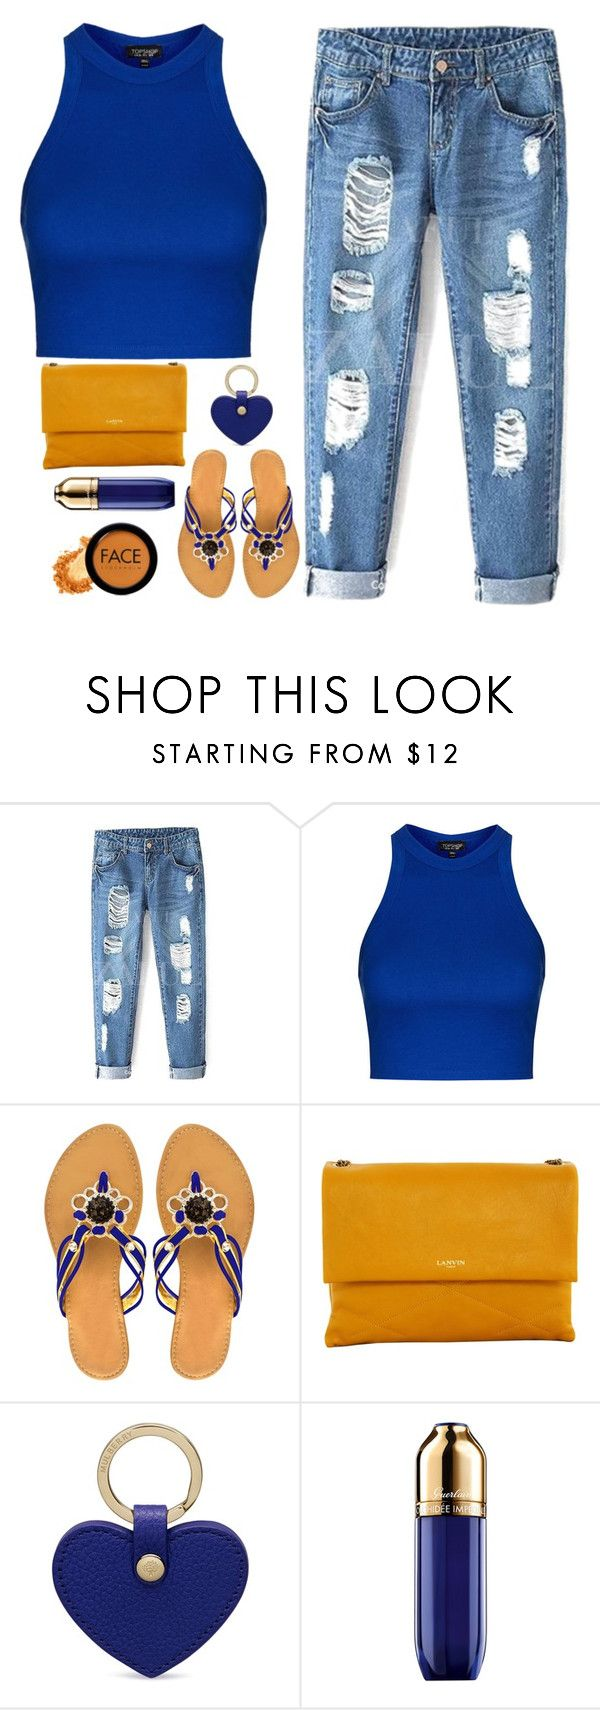 """""""nail your colors to the mast"""" by dianakhuzatyan ❤ liked on Polyvore featuring Topshop, Peach Couture, Lanvin, Mulberry, Guerlain, FACE Stockholm, women's clothing, women, female and woman"""